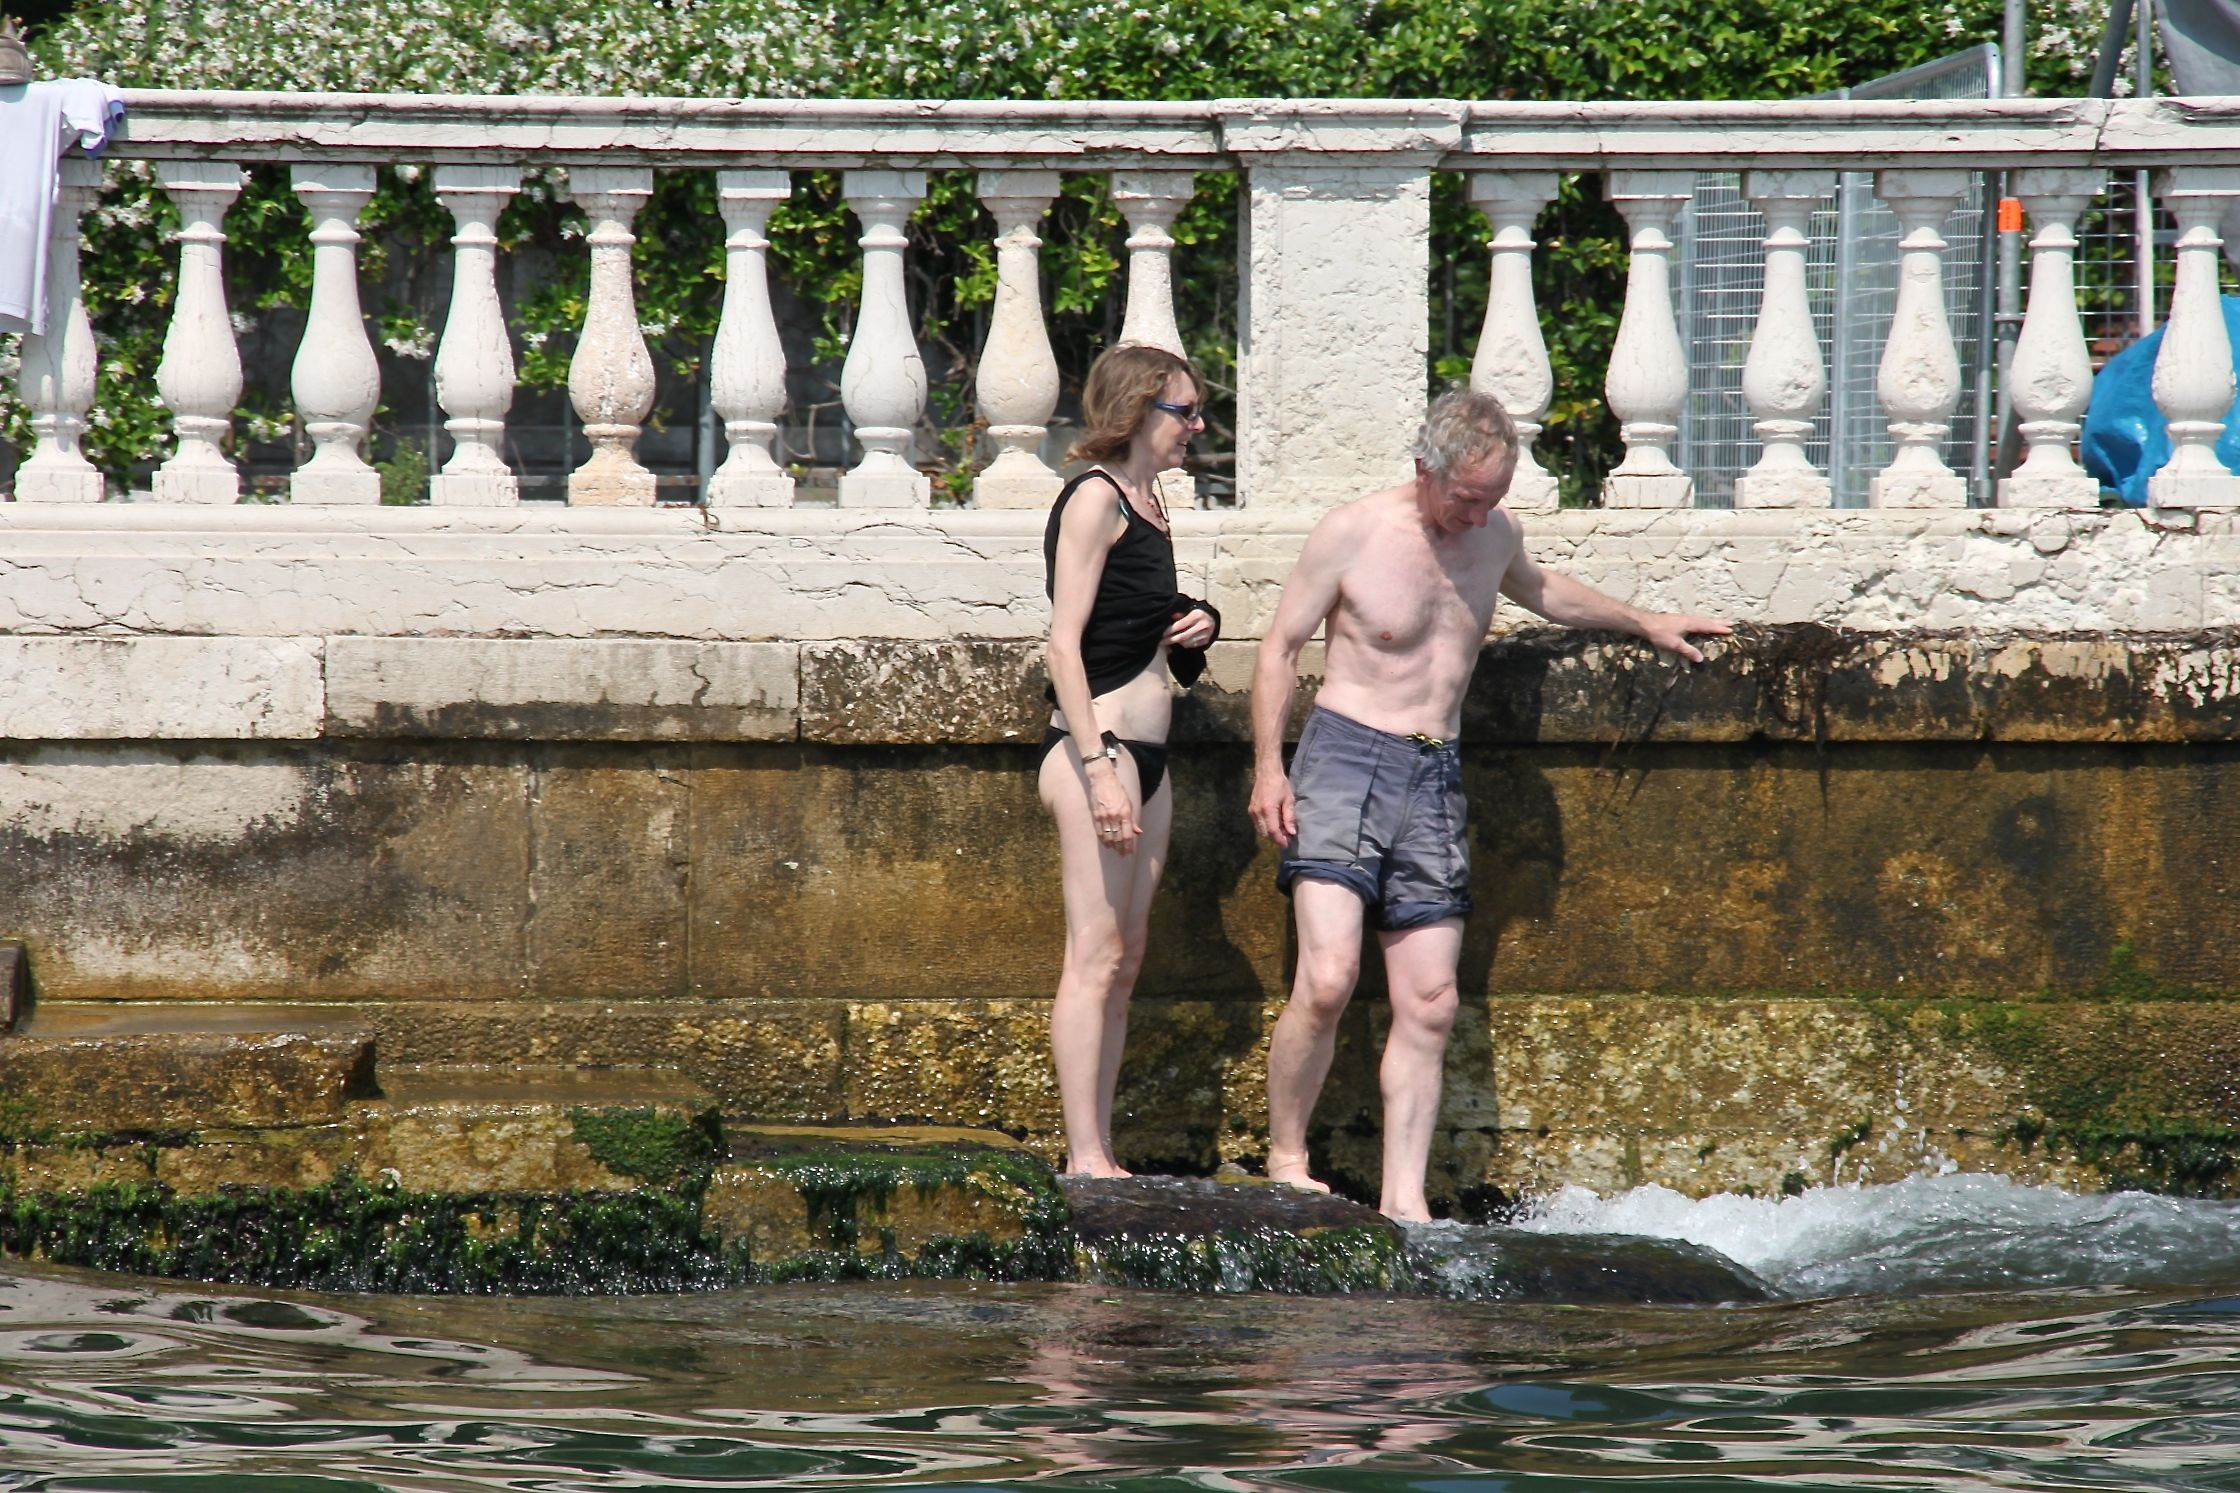 Photo of 2 tourists in bathing suits going for a dip in St Mark's Basin, Venice